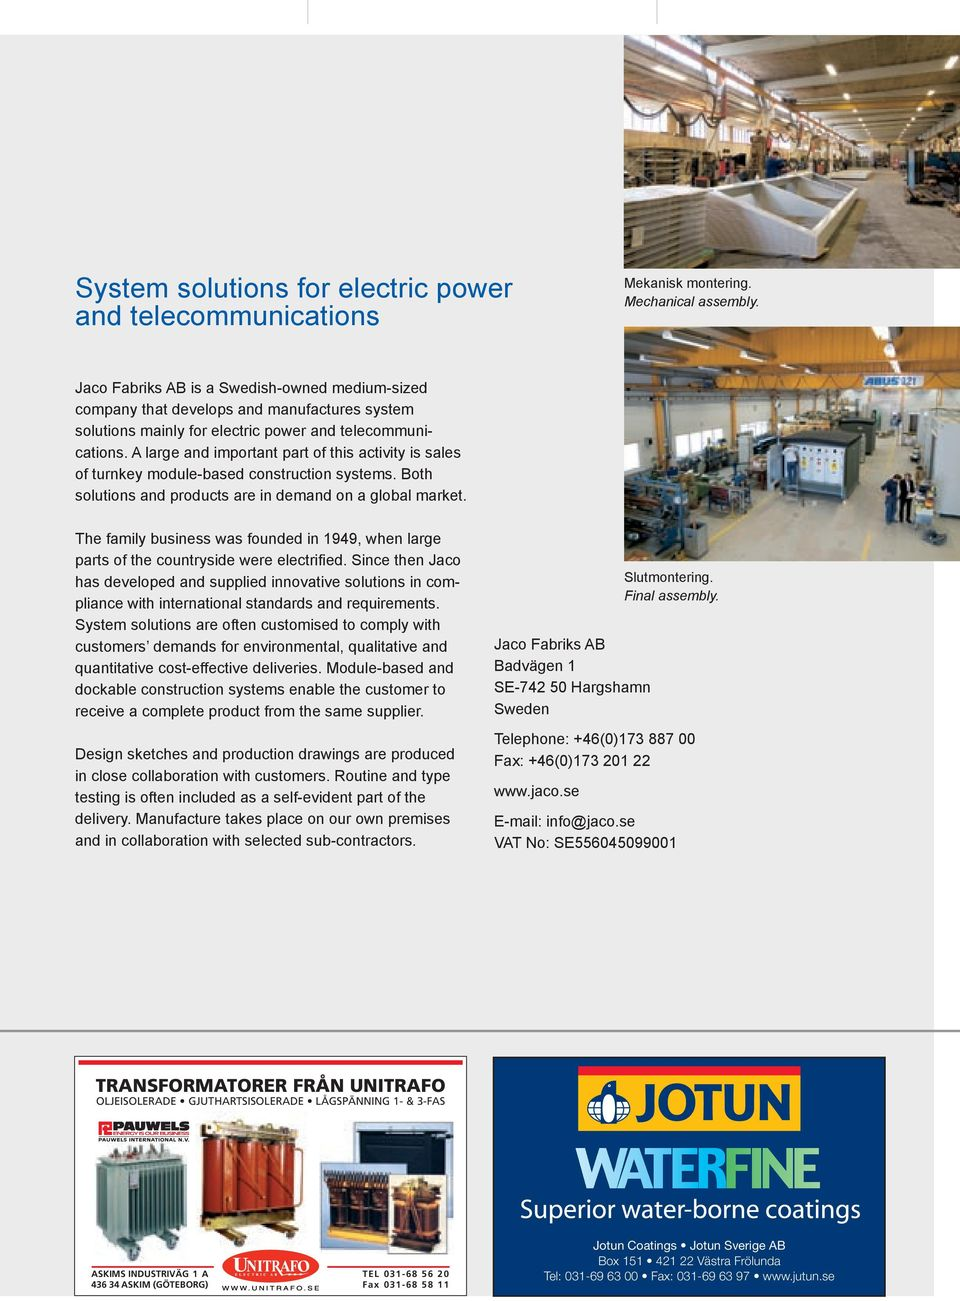 A large and important part of this activity is sales of turnkey module-based construction systems. Both solutions and products are in demand on a global market.